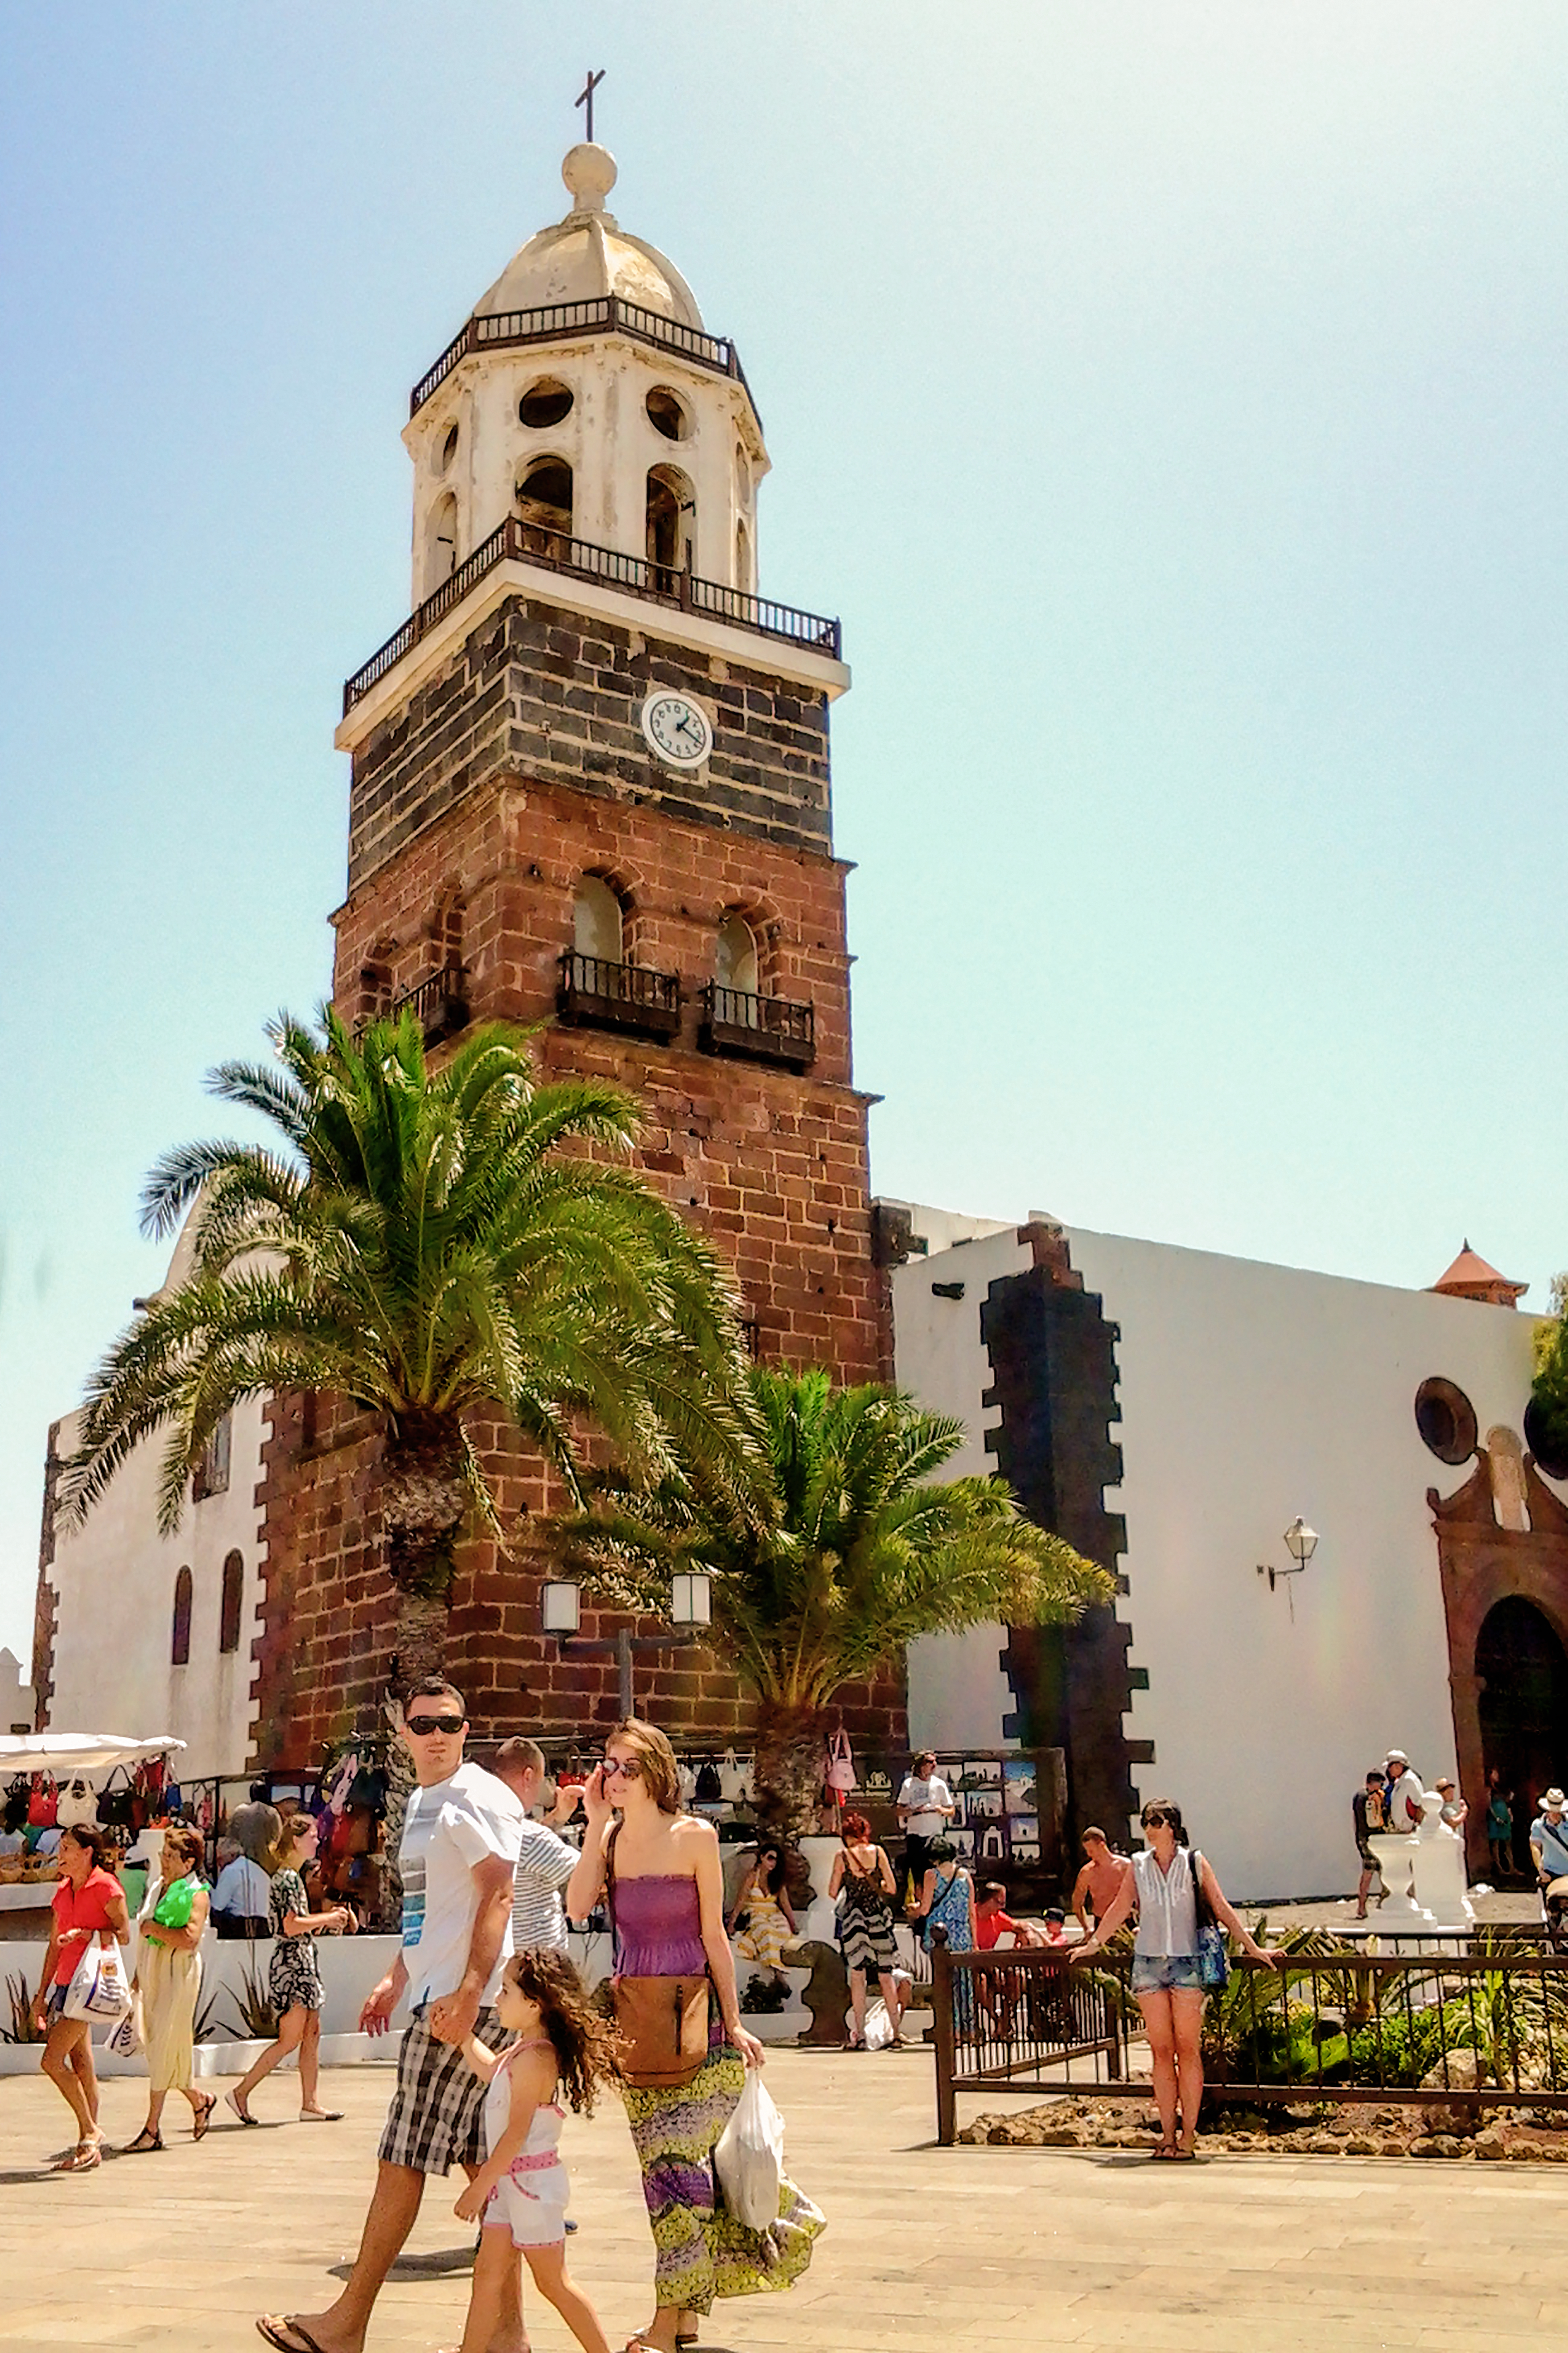 The Clocktower of Teguise.